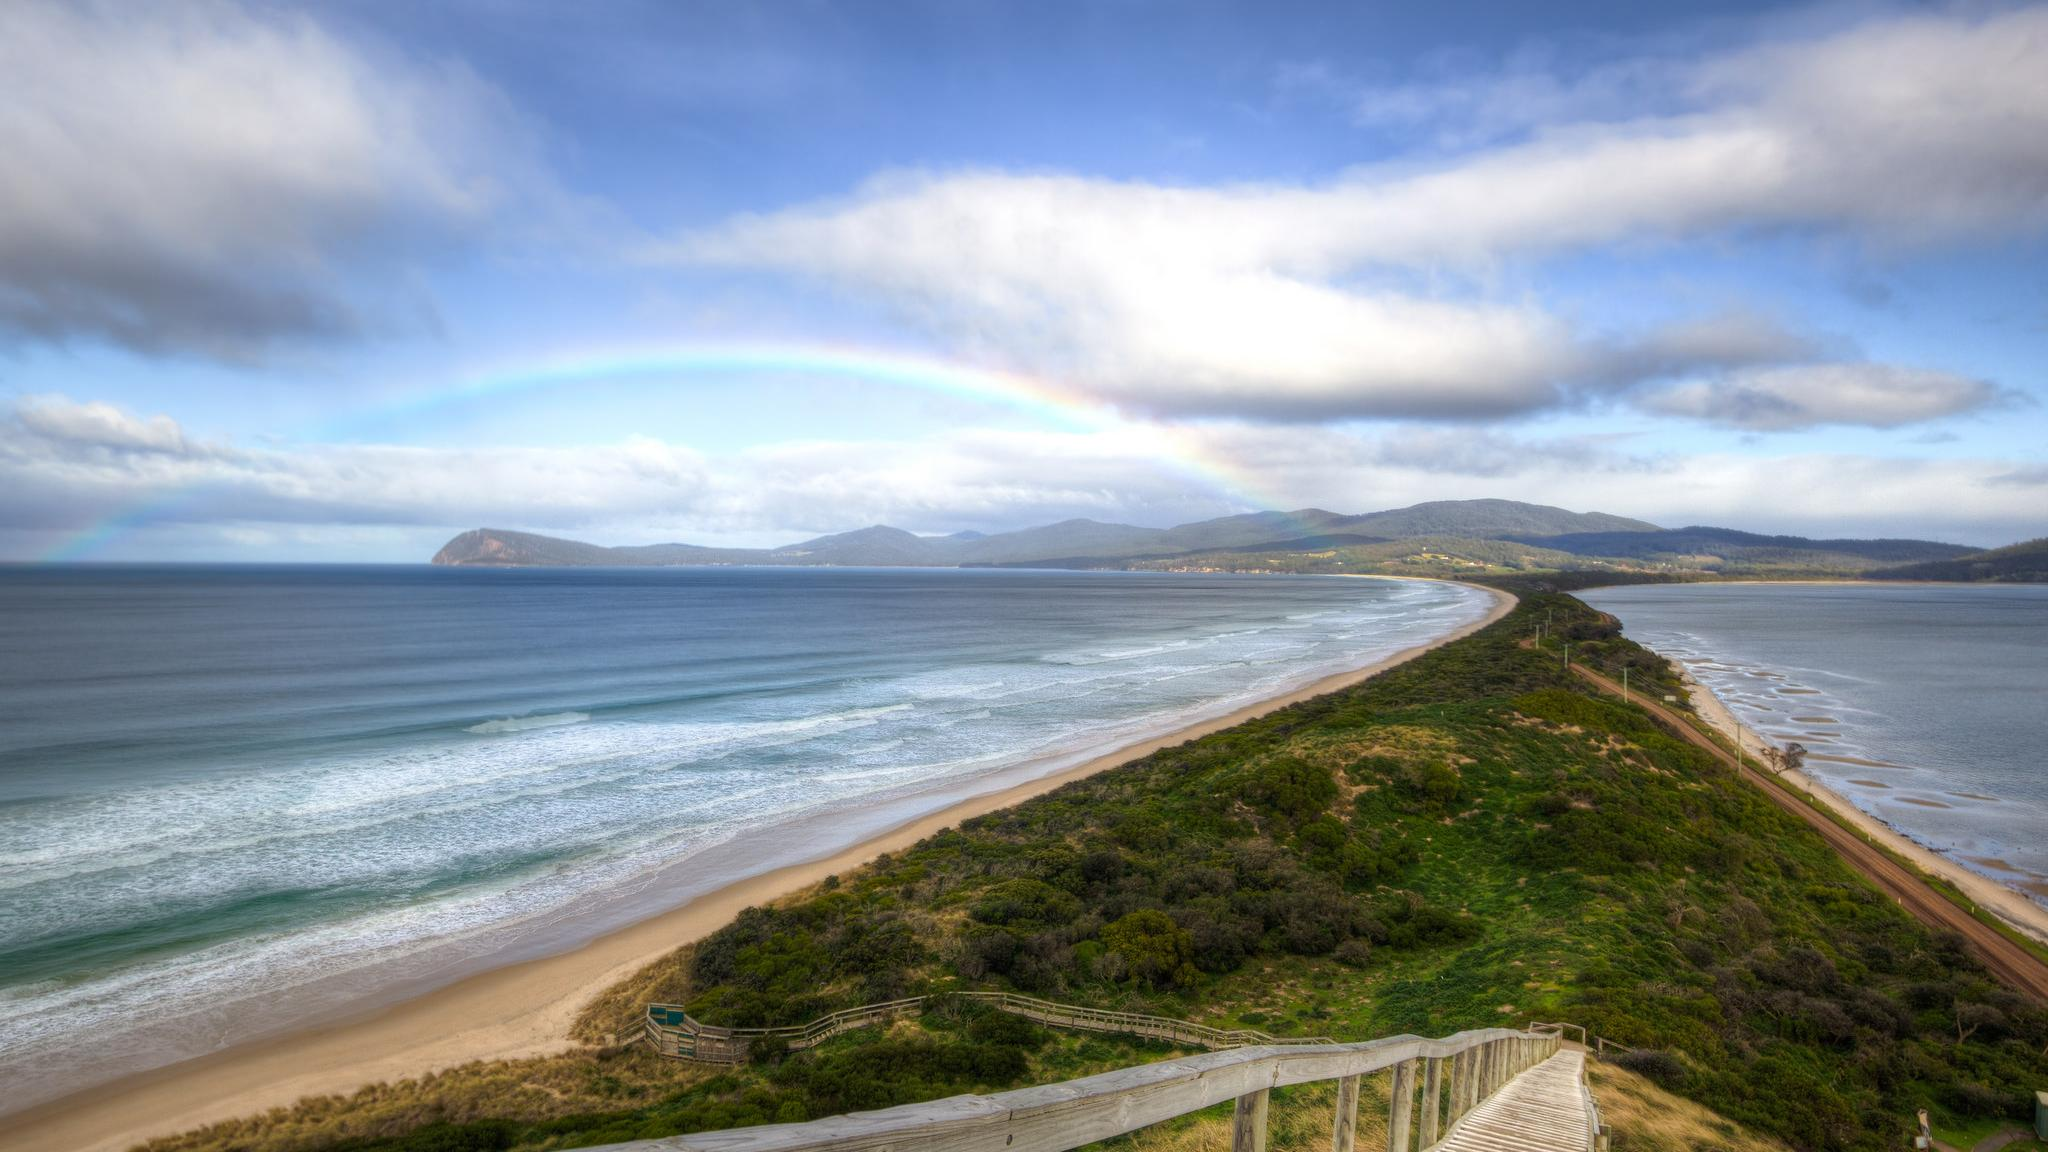 15 Best Tasmanian Landmarks - The Neck Bruny Island Tasmania